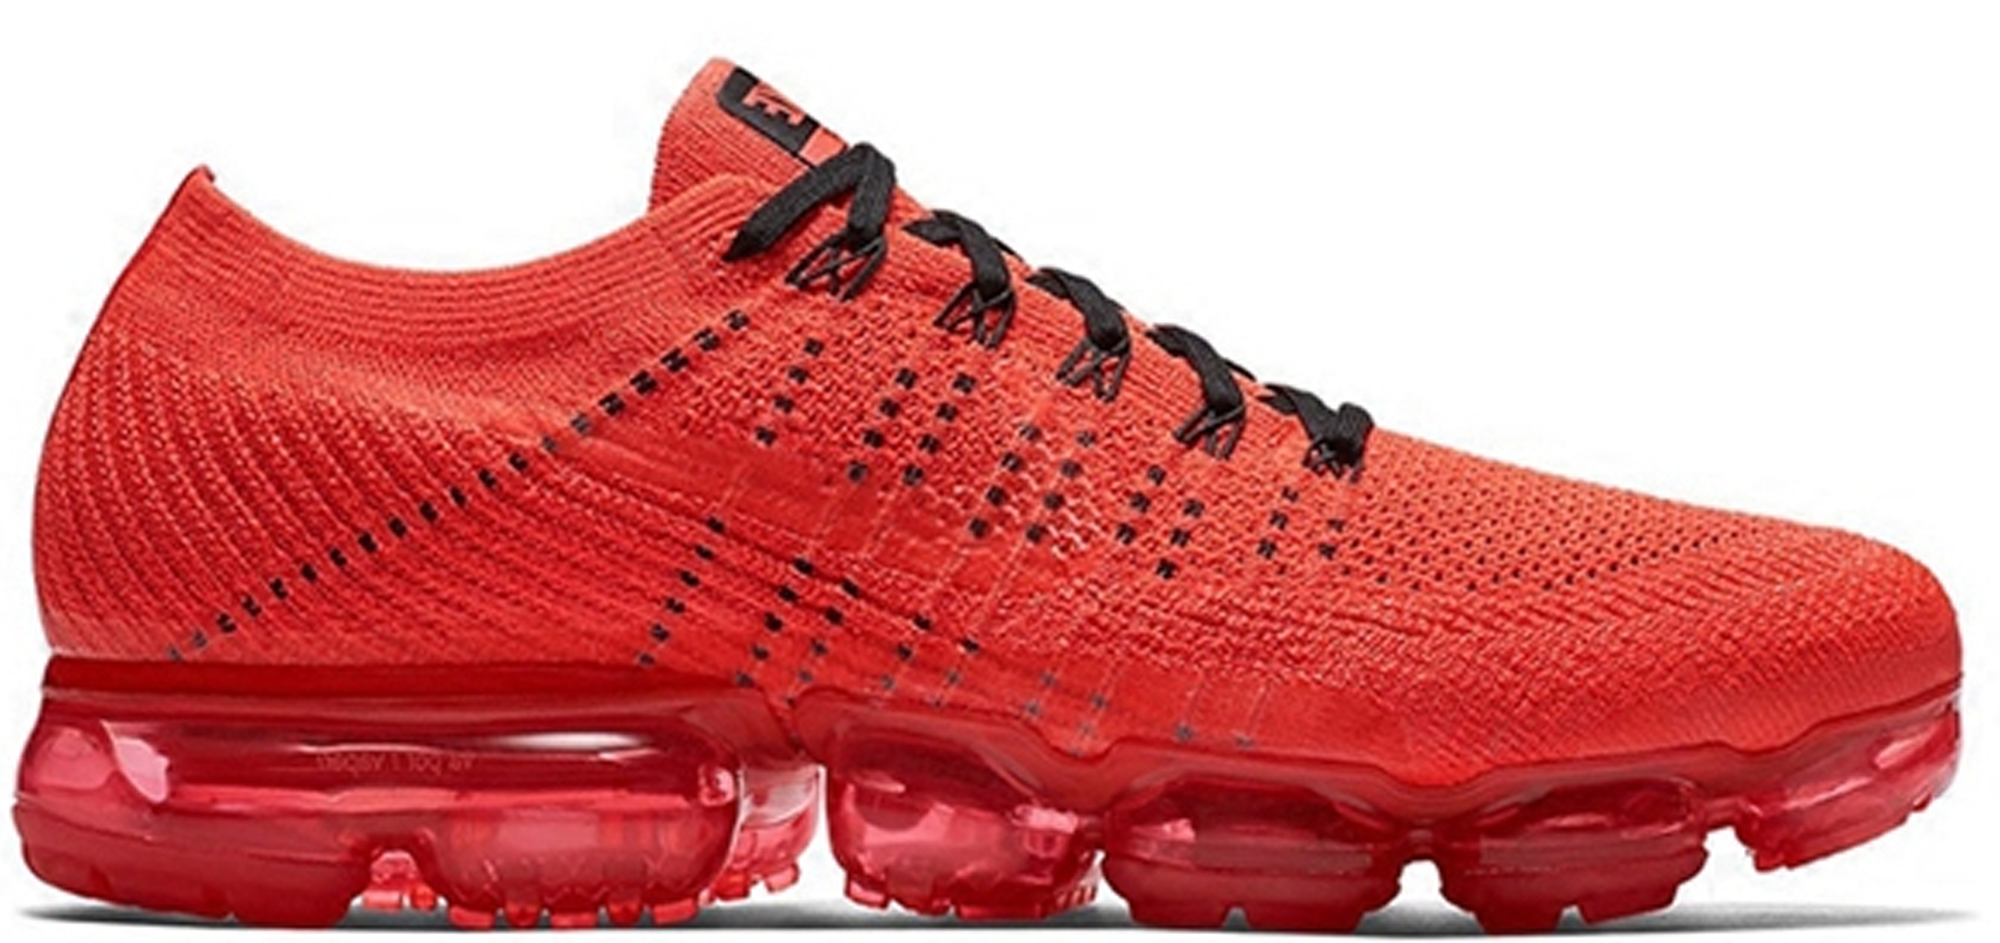 7c19e79b7c3b5 CLOT x Nike Air VaporMax Bright Crimson - StockX News